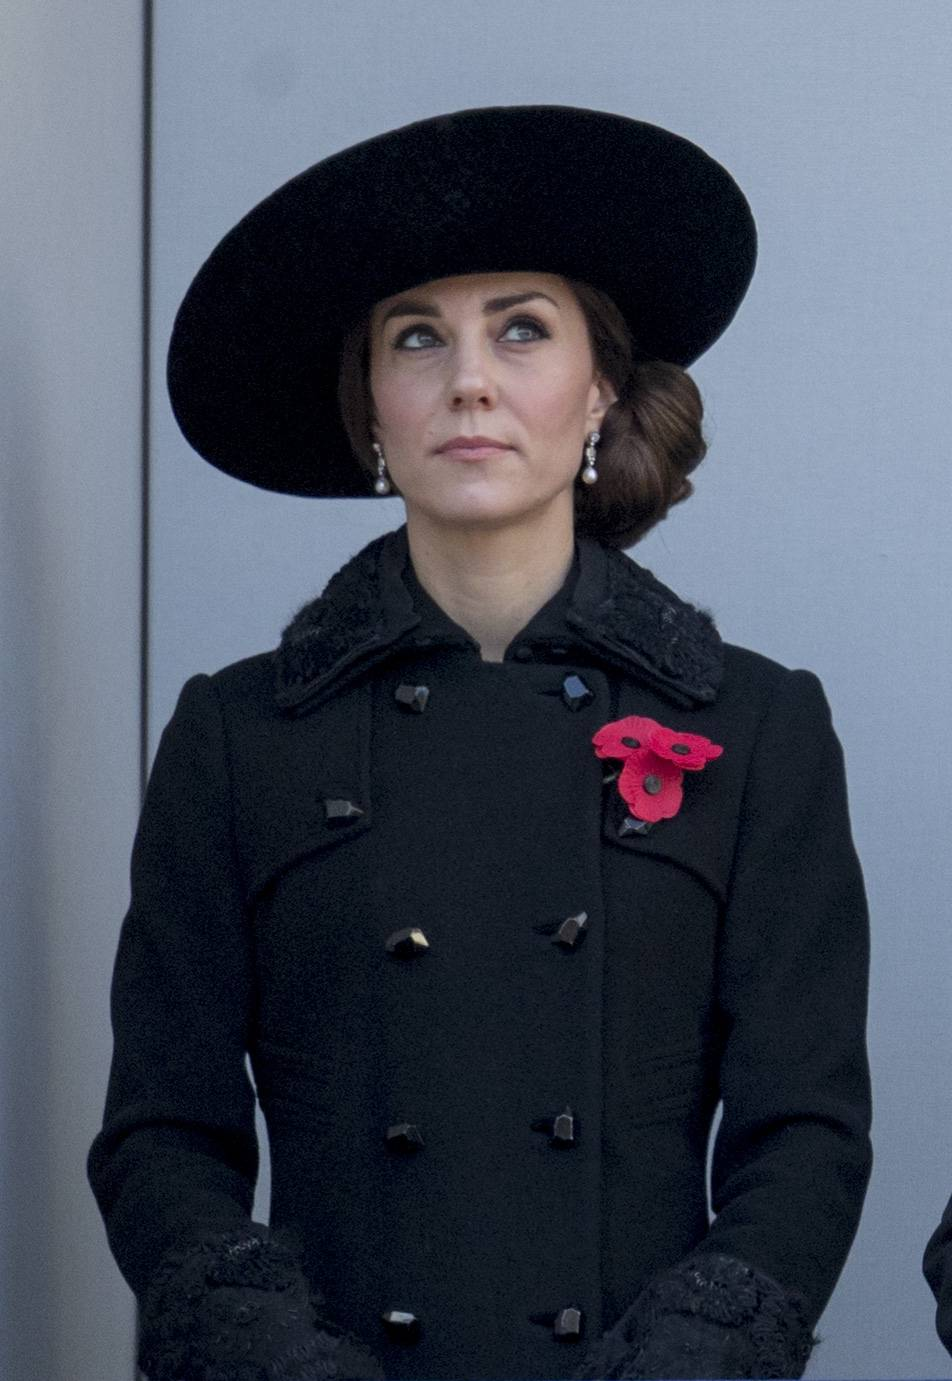 Catherine, Duchess of Cambridge attends the nations remembrance service at the Cenotaph memorial in central London, on Nov. 13, 2016.